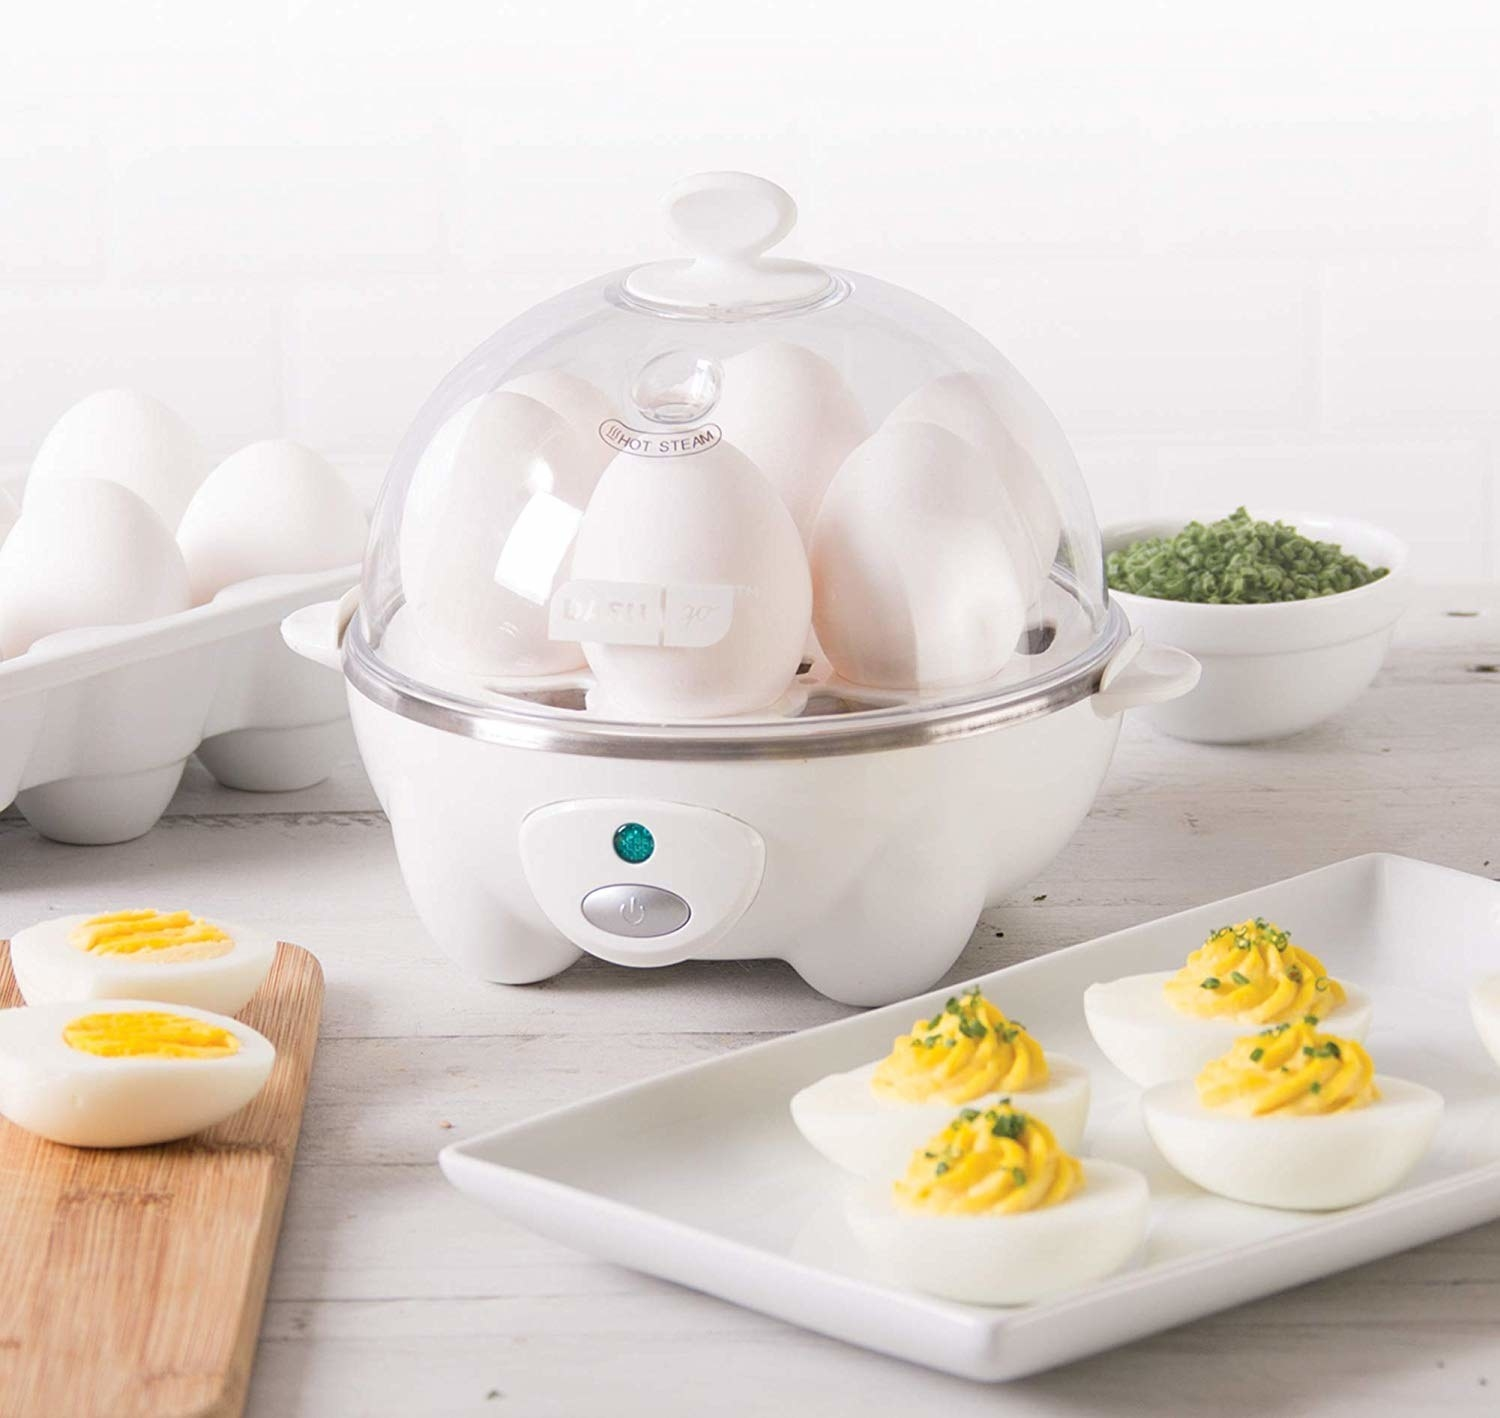 Dome-shaped egg cooker with six eggs cooking inside of it